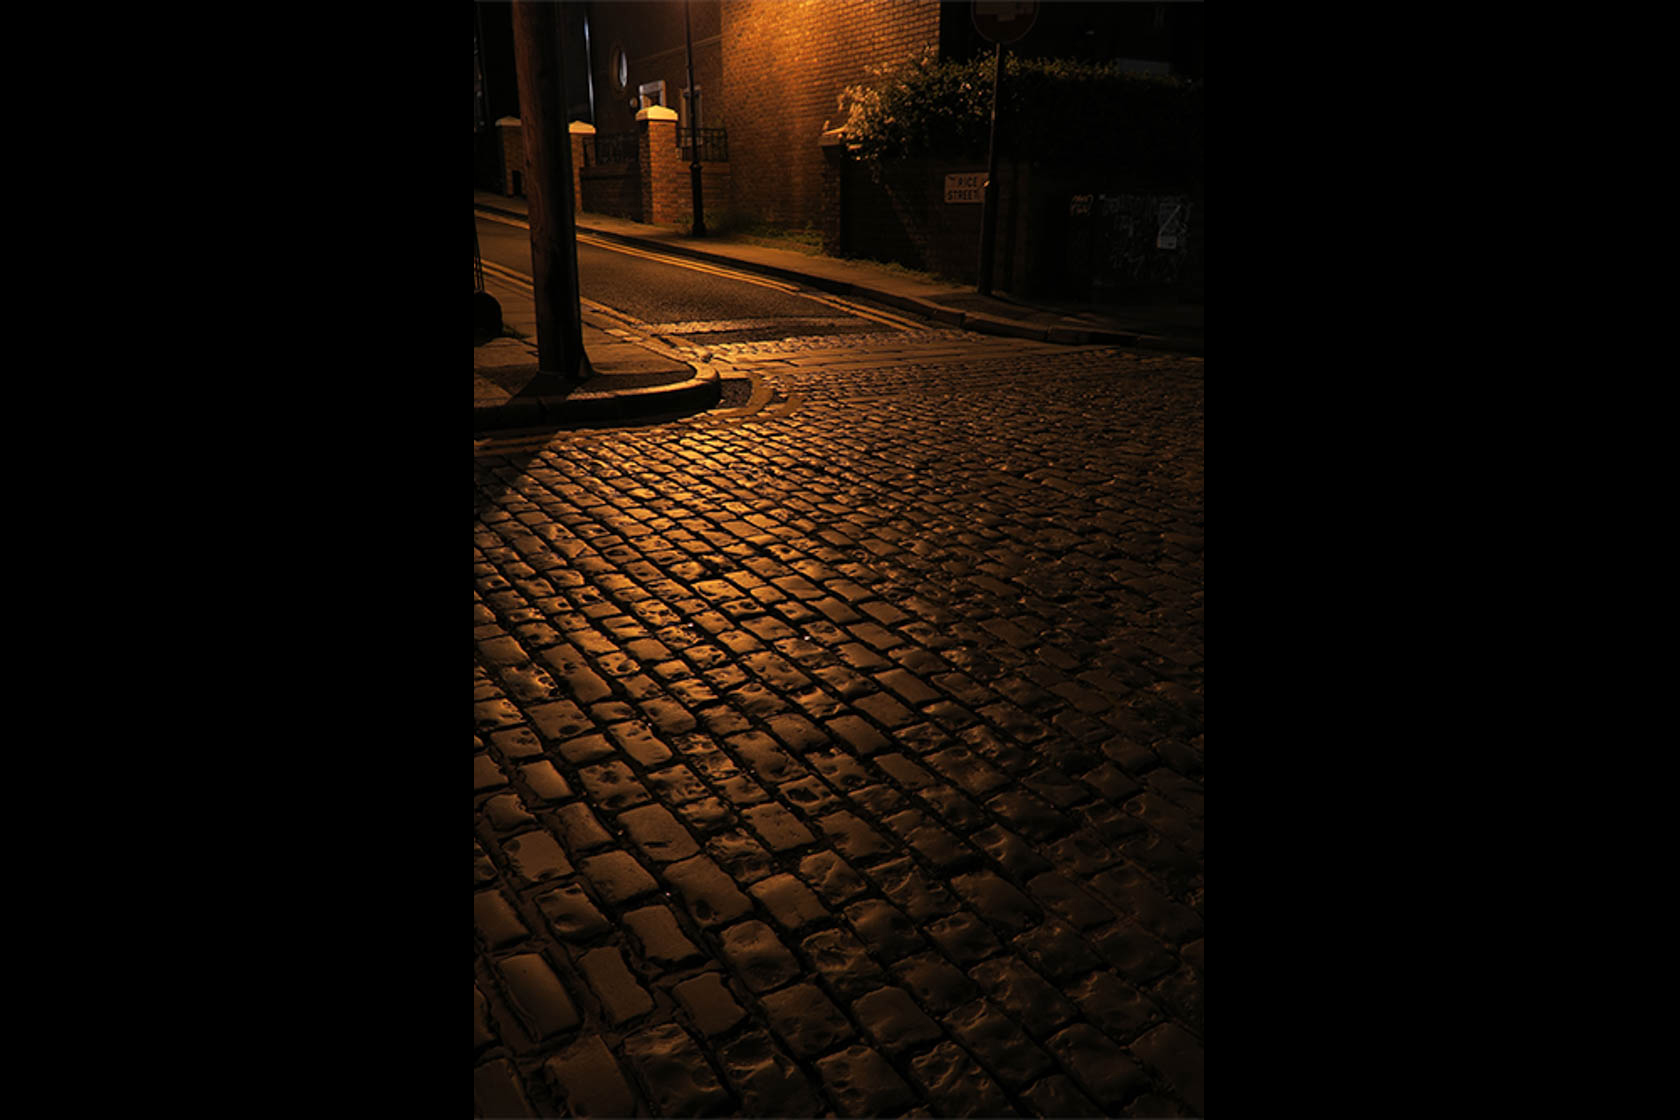 Bricked street at night shot on PowerShot G5 X Digital Compact Camera